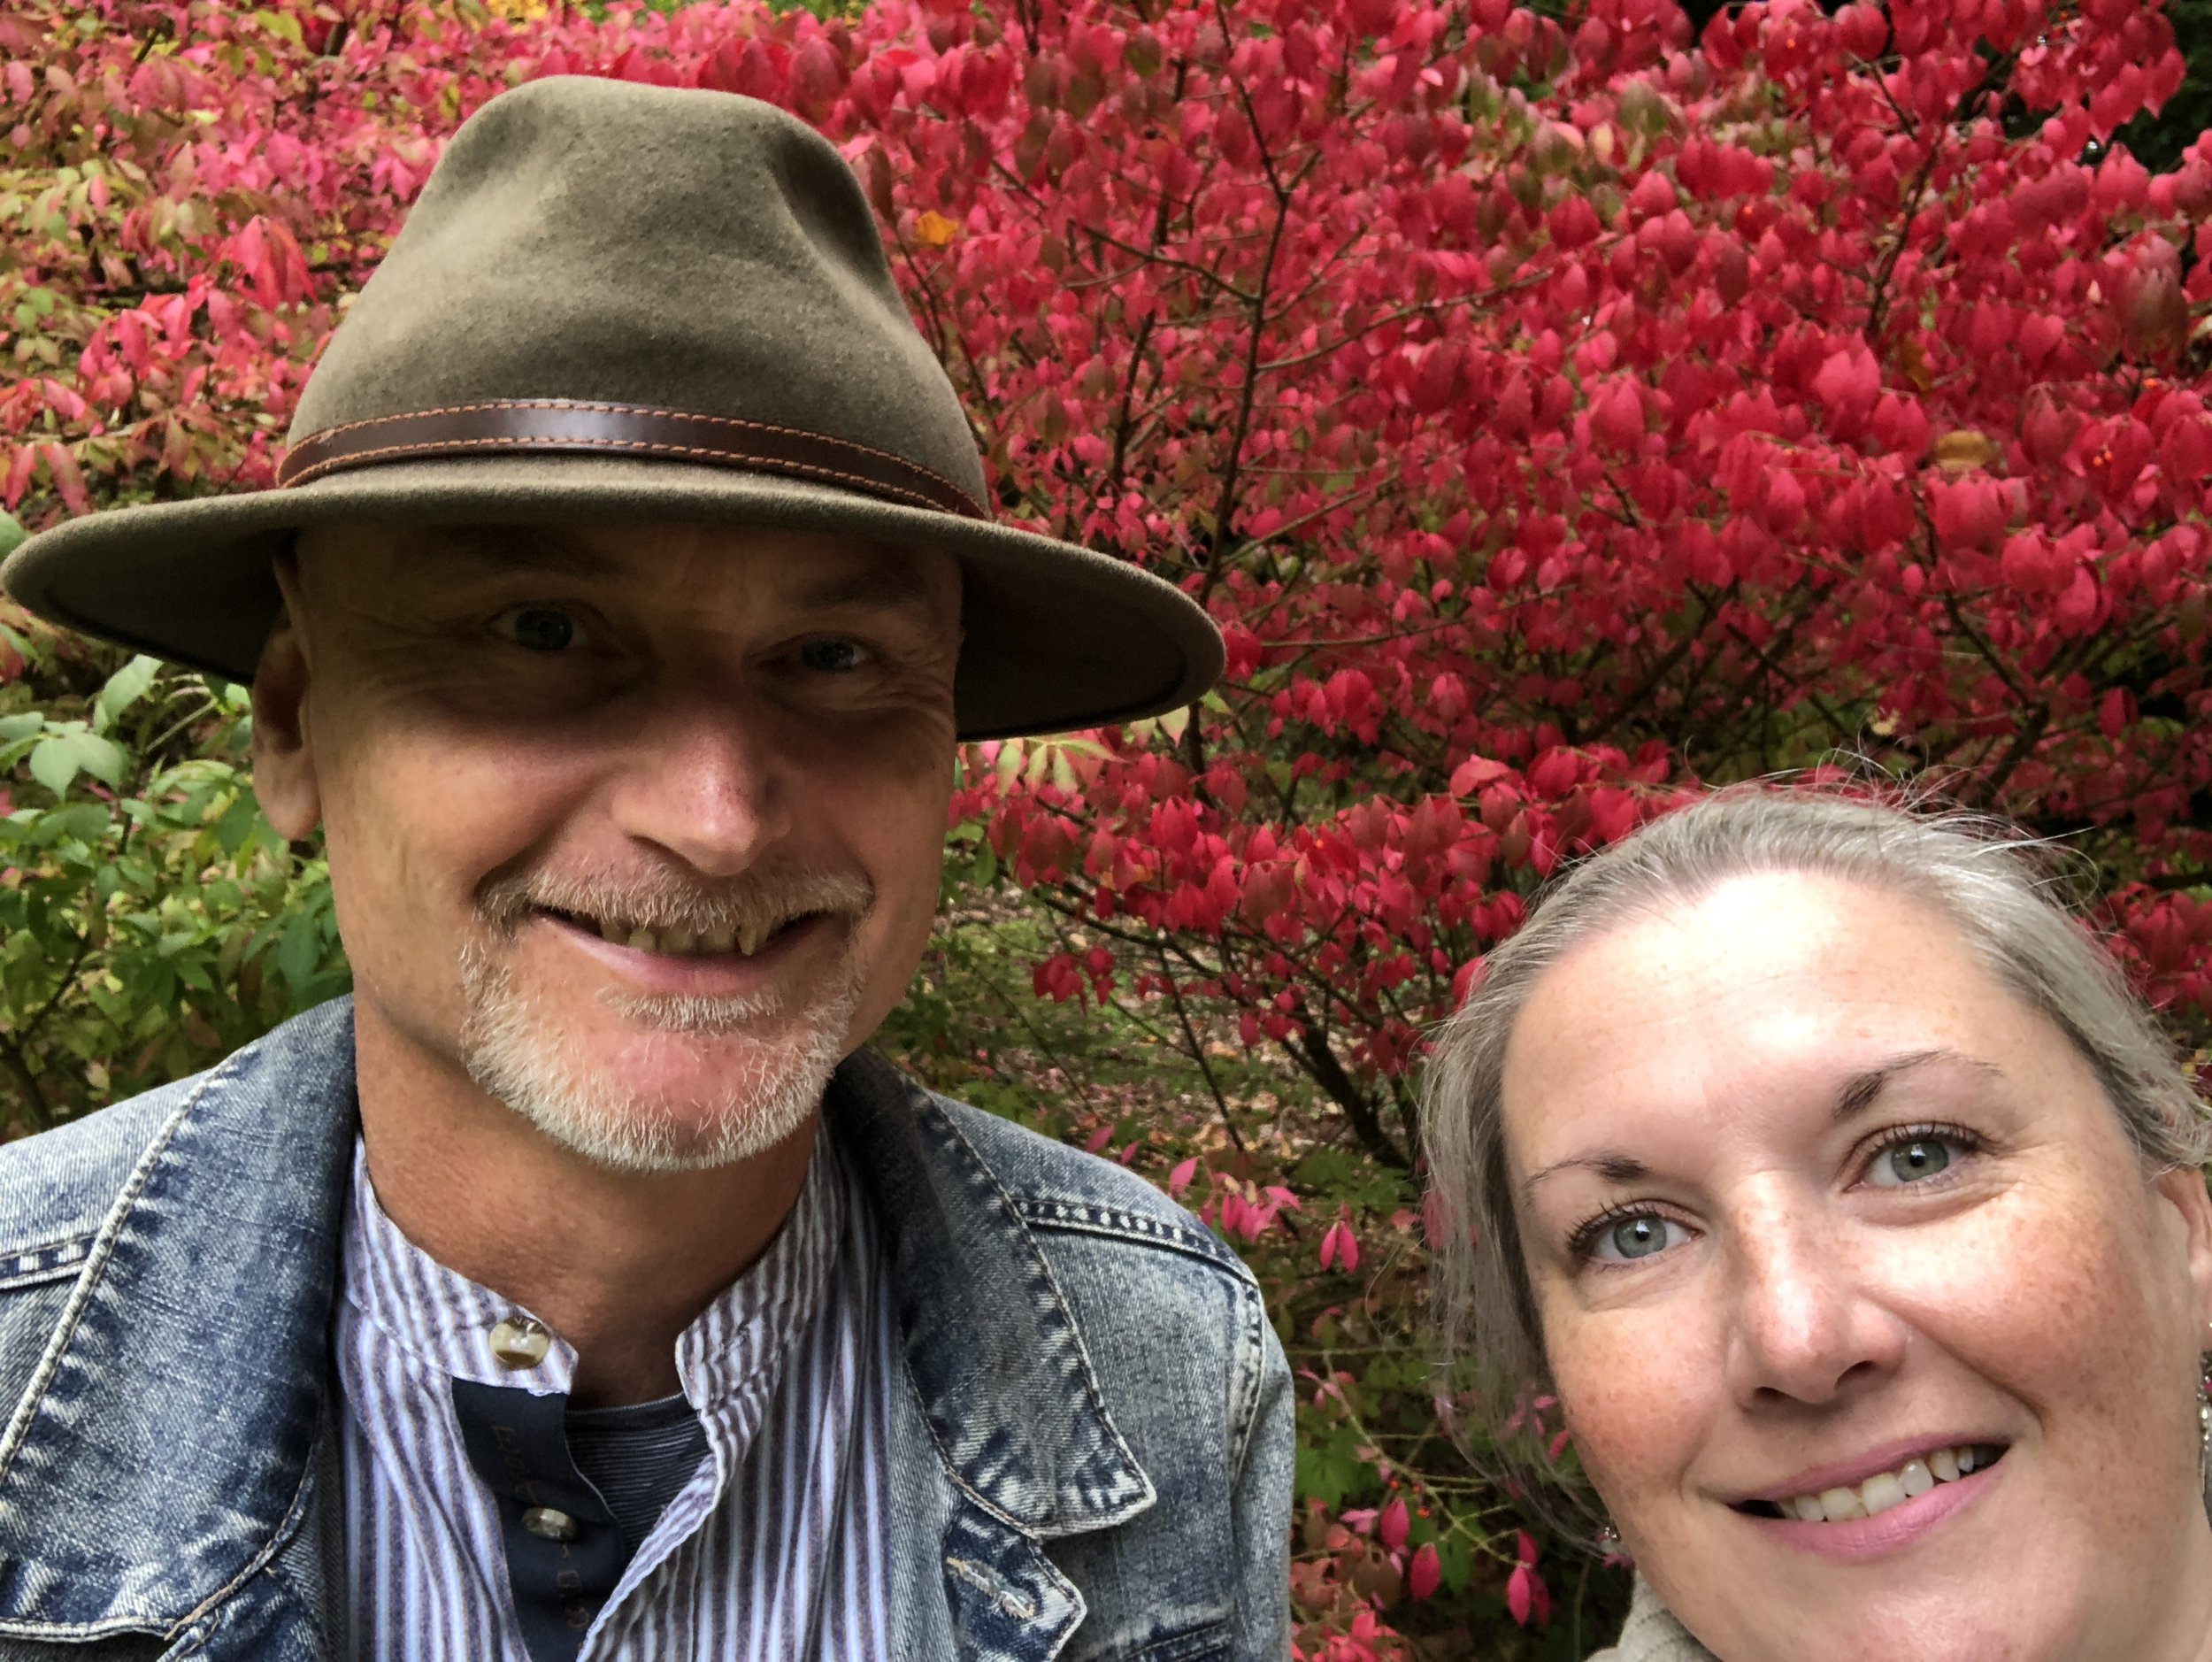 Ian and Clare…. - Warmly invite you to join us on our journey through the seasons.